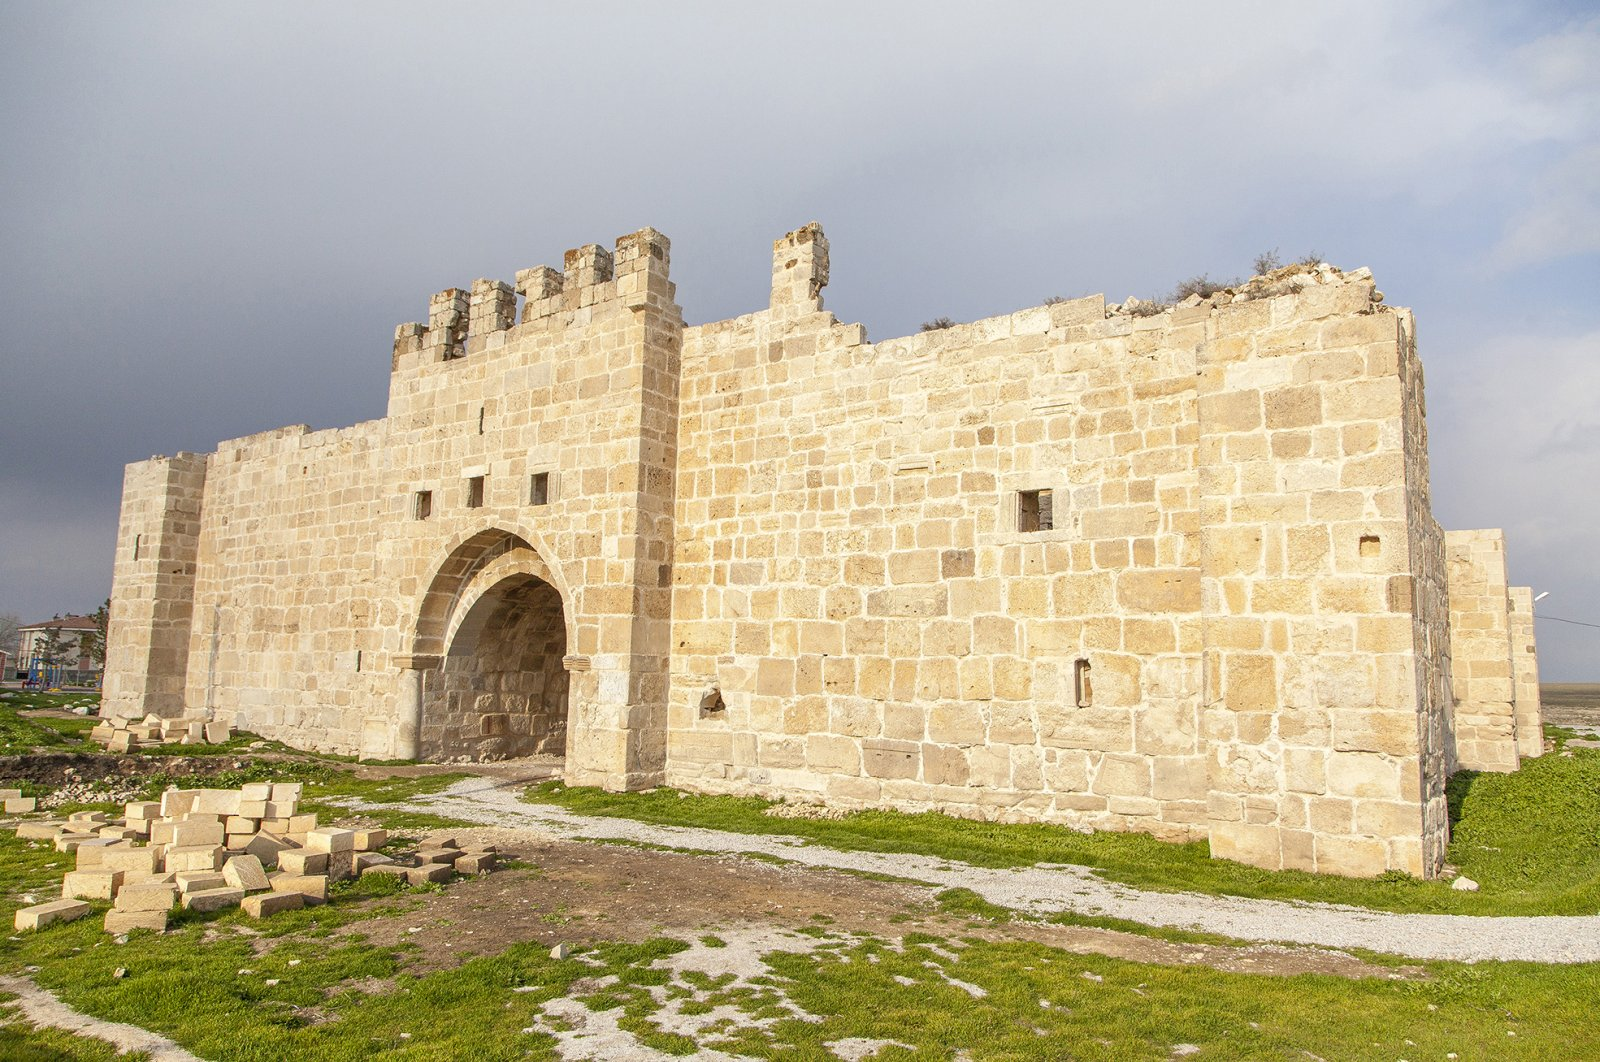 The Obruk Han will join Turkey's tourism attractions with the completion of the restoration.